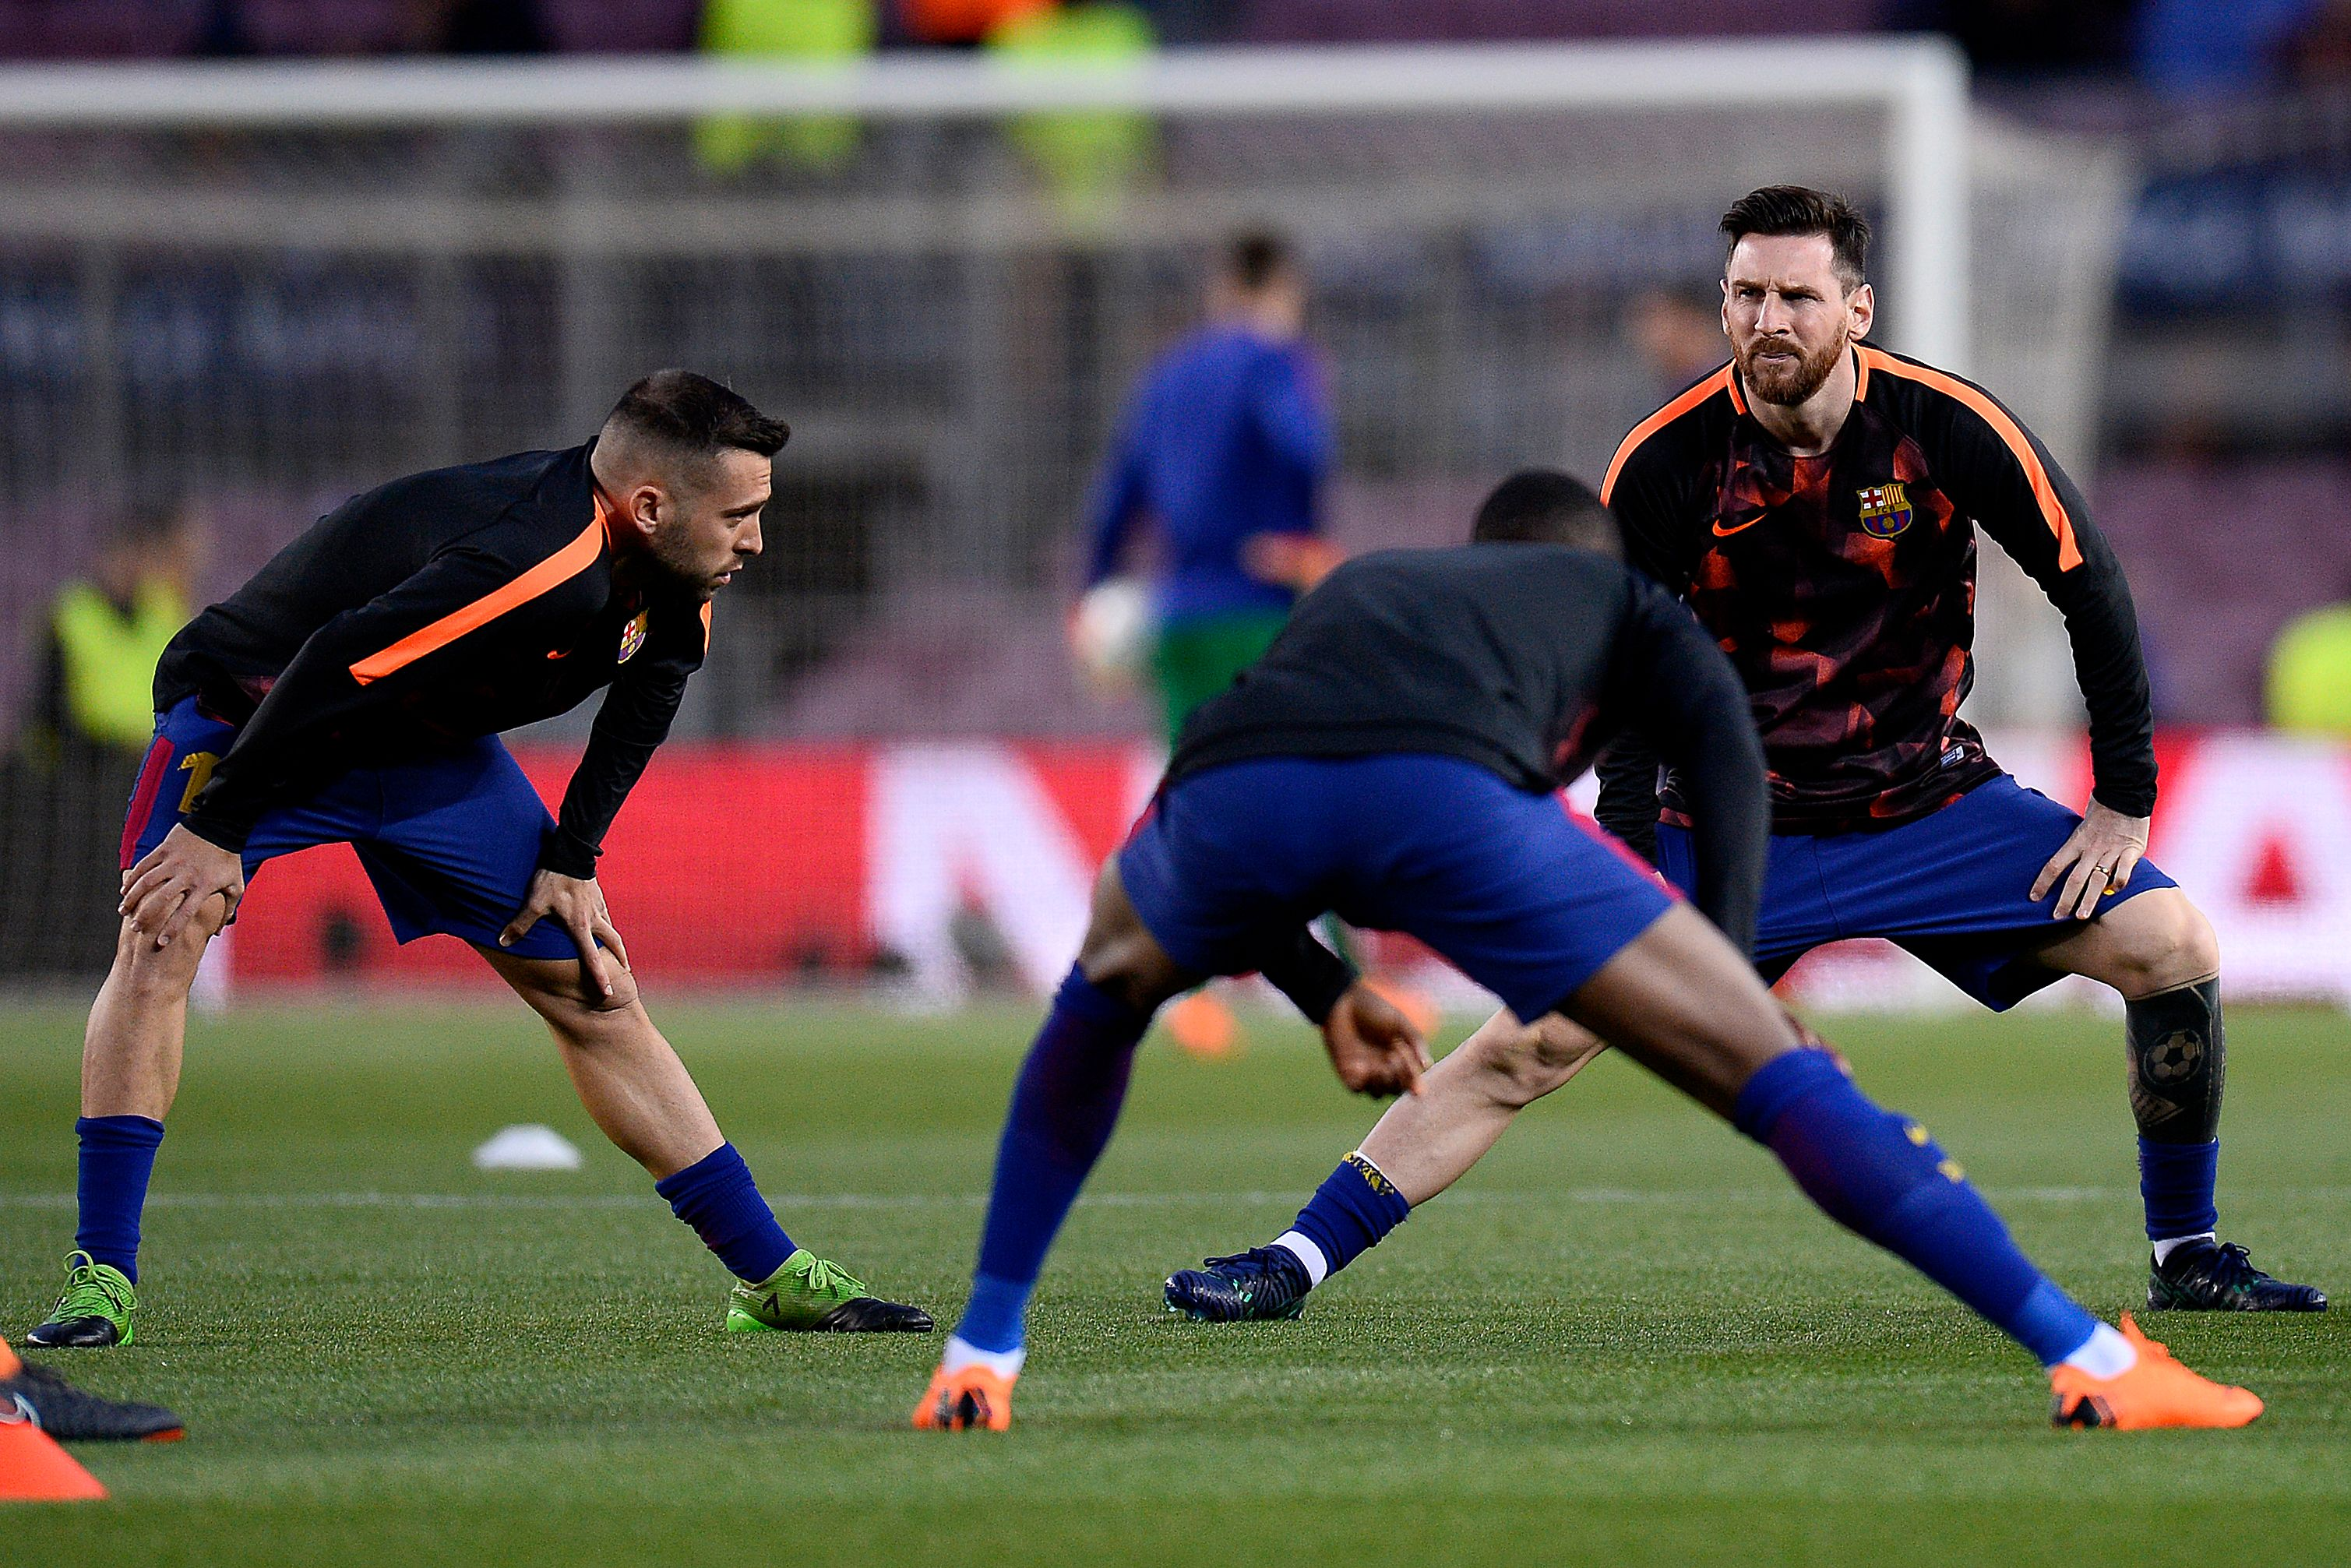 Jordi Alba and Lionel Messi will be unavailable for Barcelona (Photo by JOSEP LAGO/AFP/Getty Images)